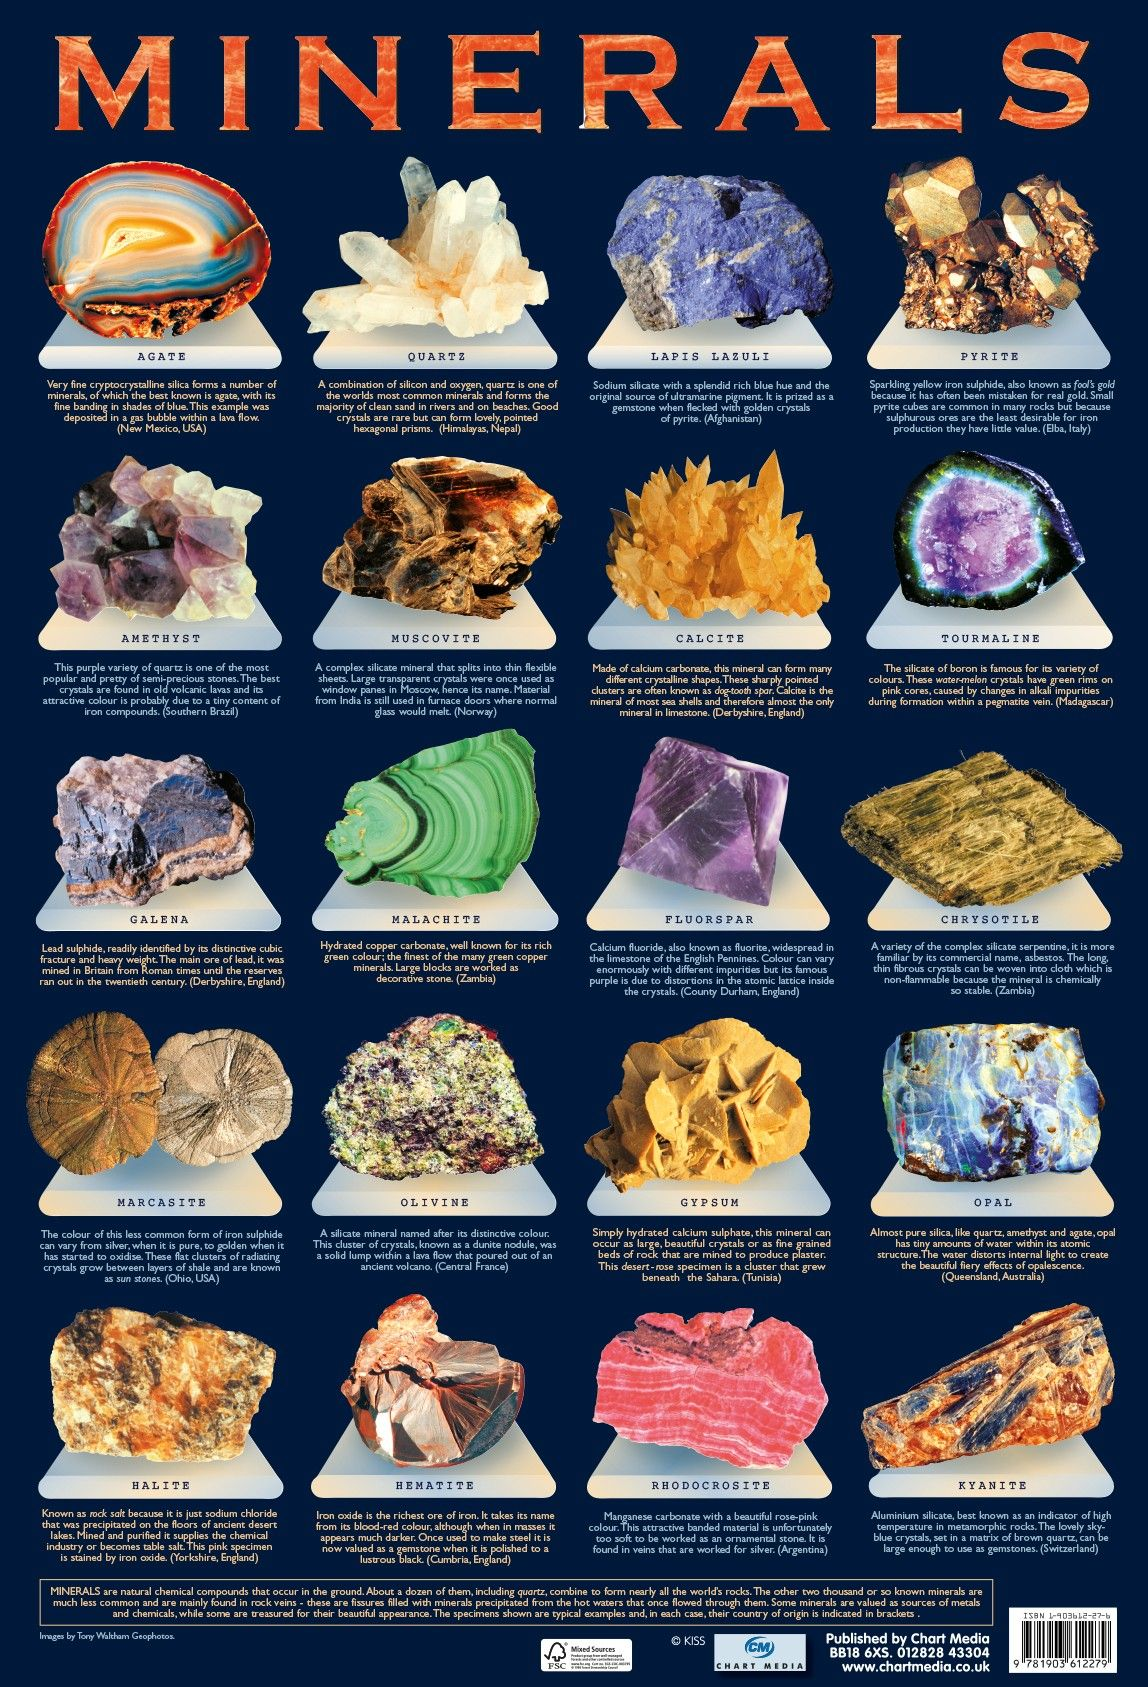 Minerals Poster By Chart Media